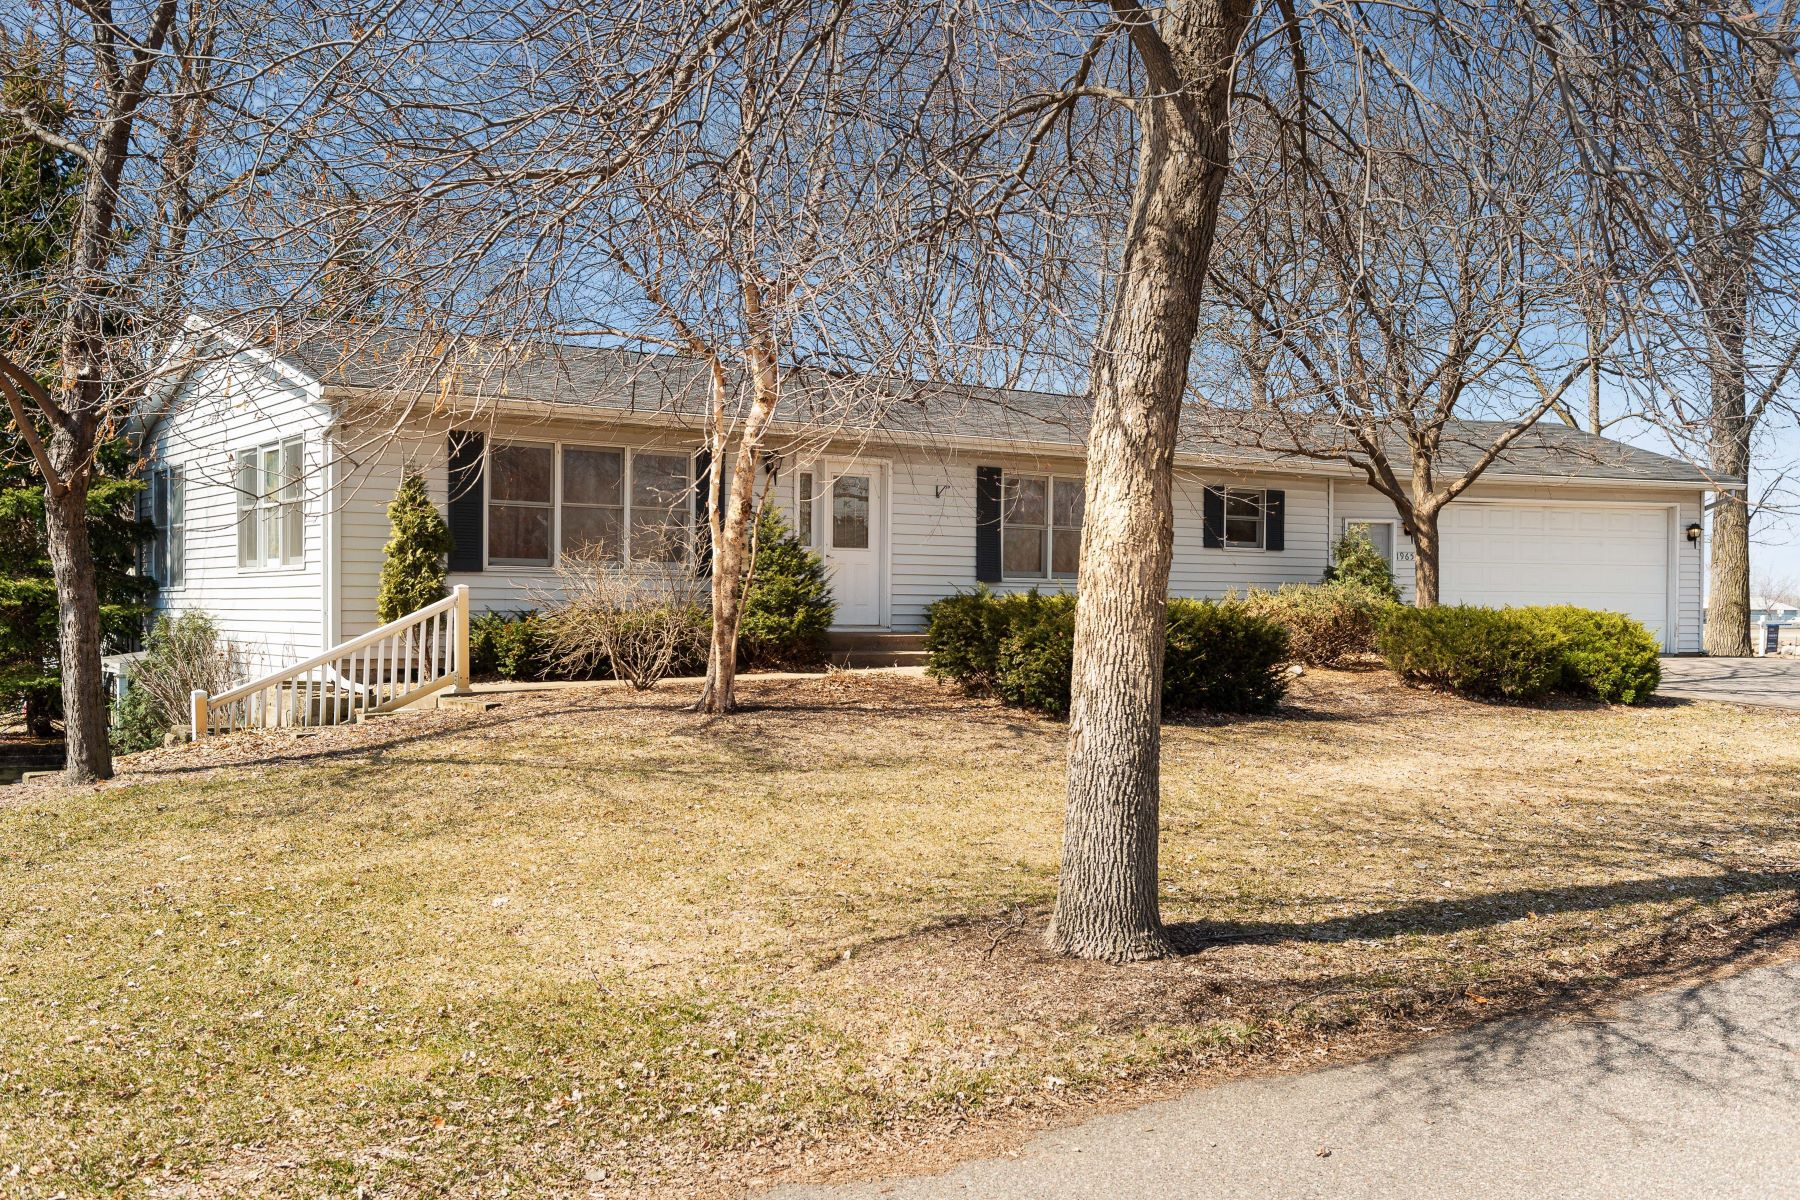 Single Family Homes for Sale at 19654 Nowthen Boulevard NW Other Areas, Minnesota 5530 United States